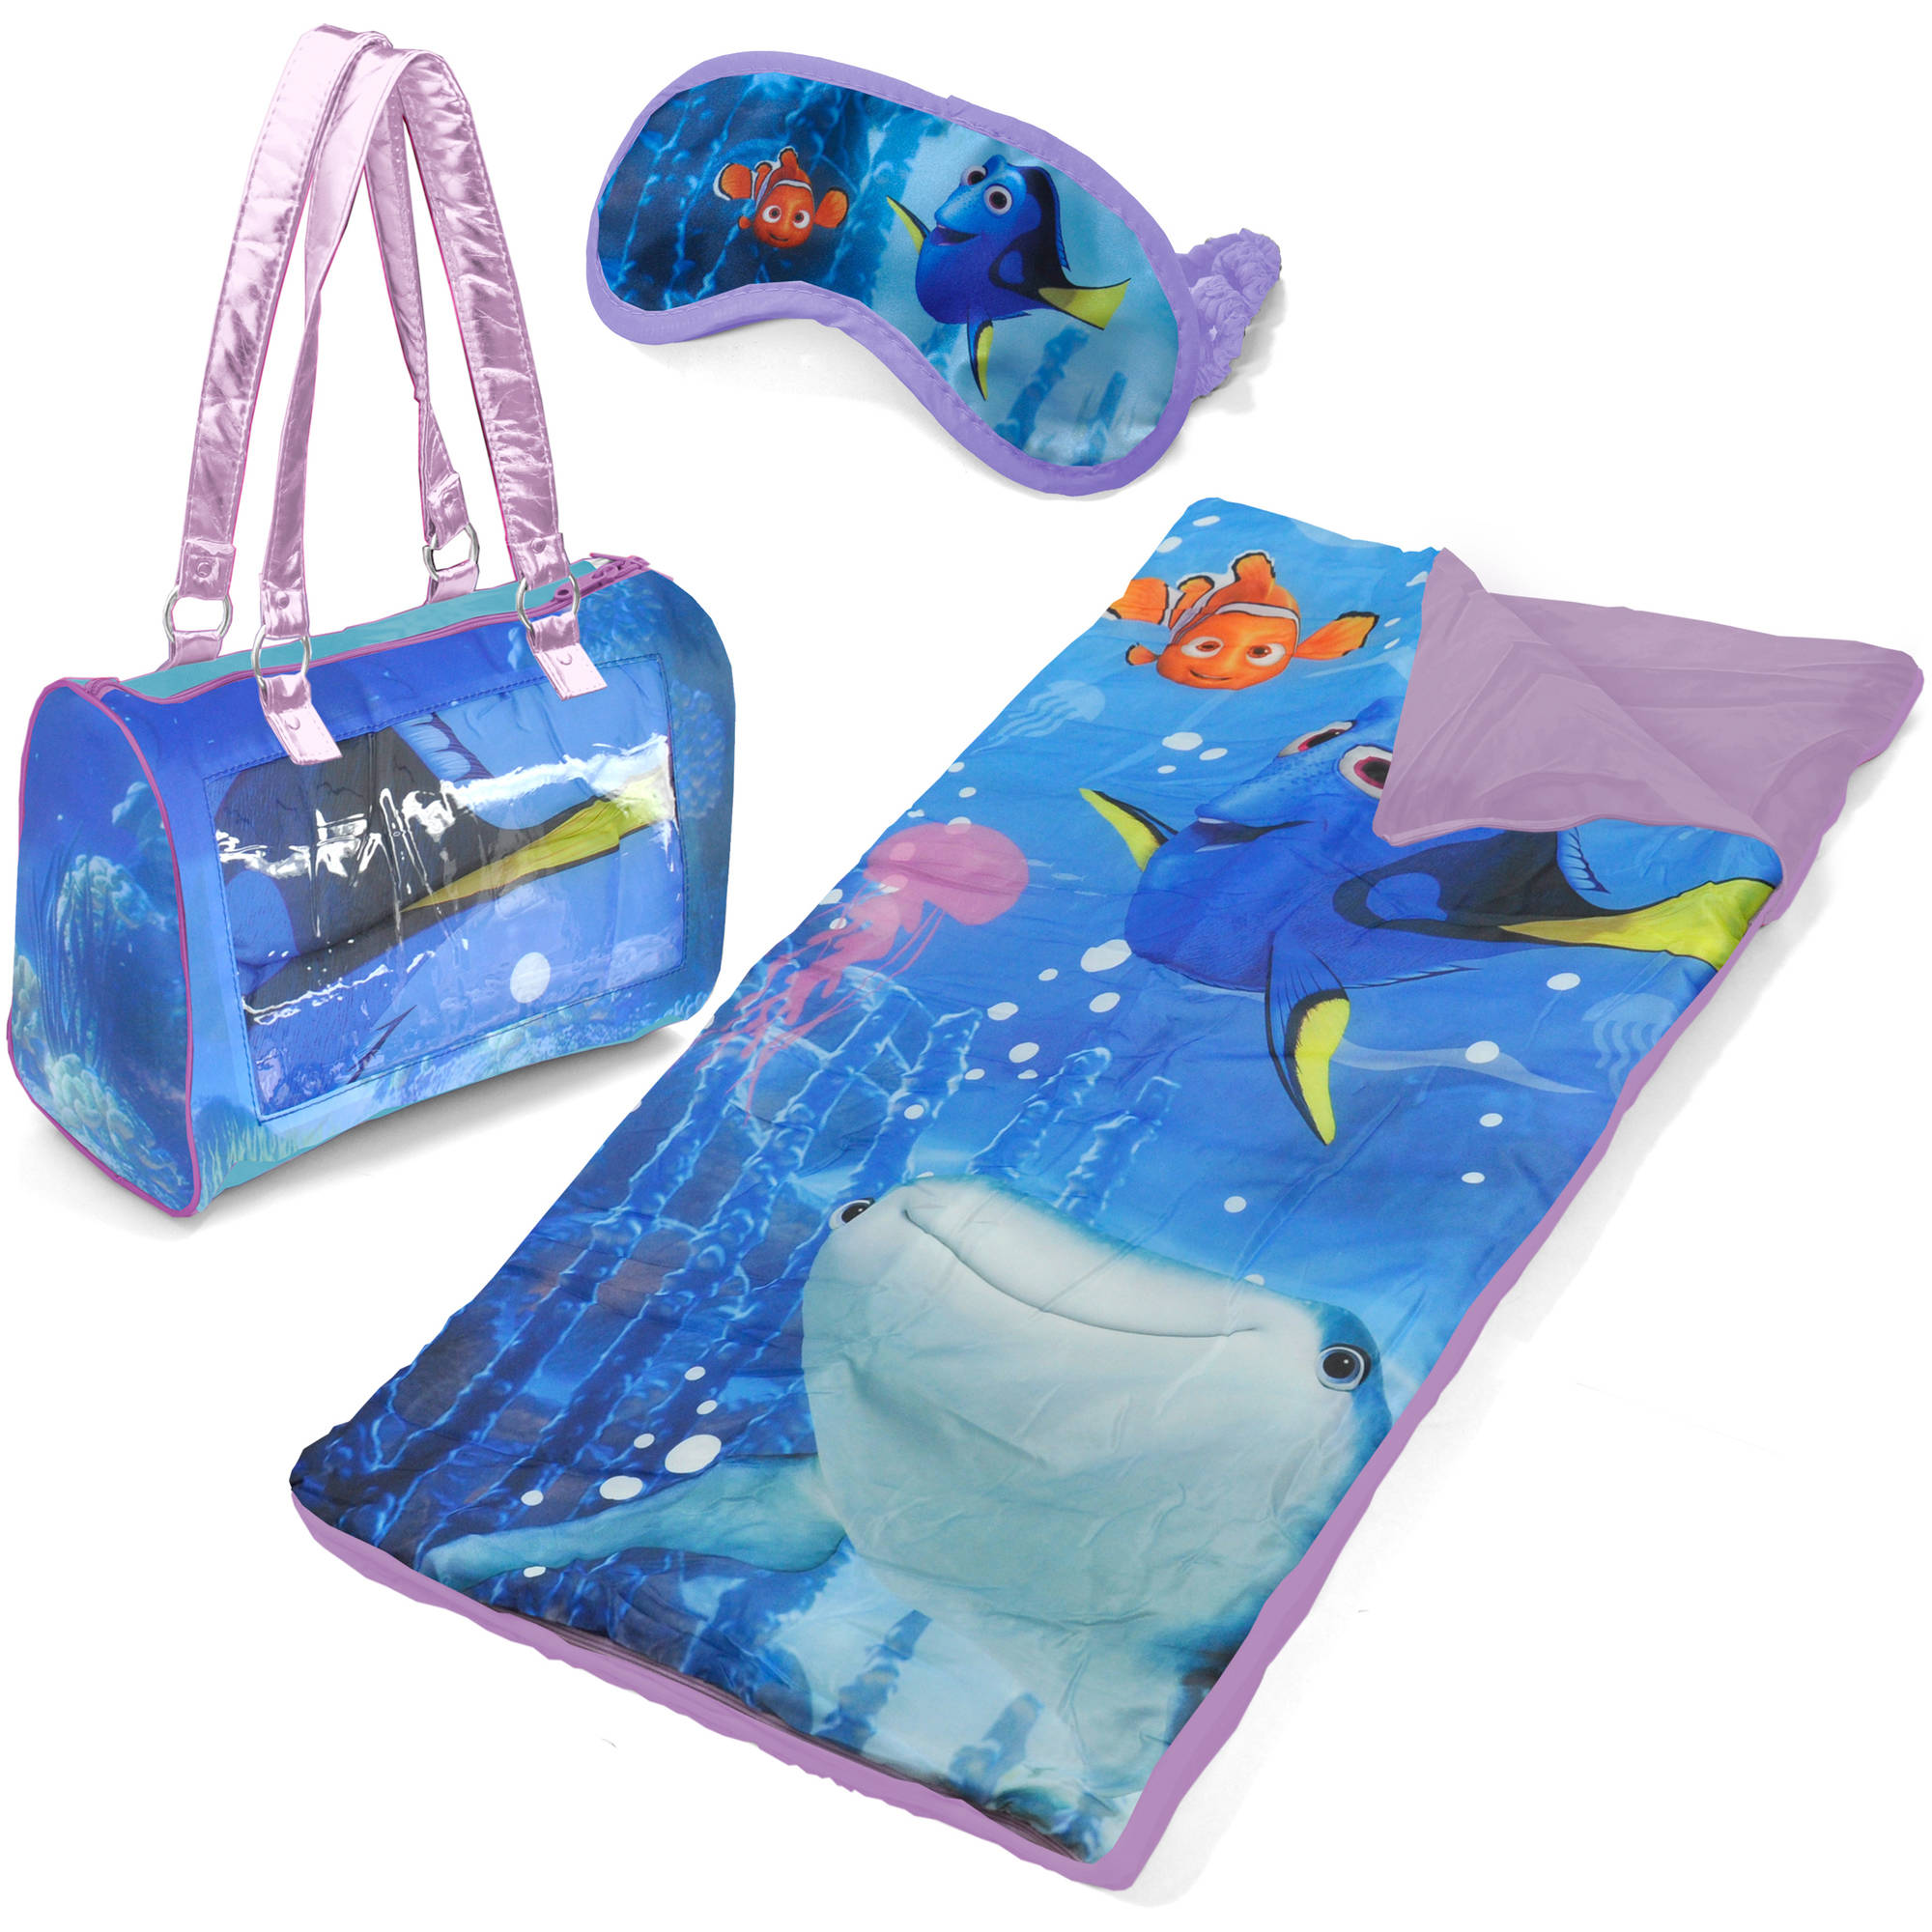 Finding Dory Sleepover Purse Set with Eyemask